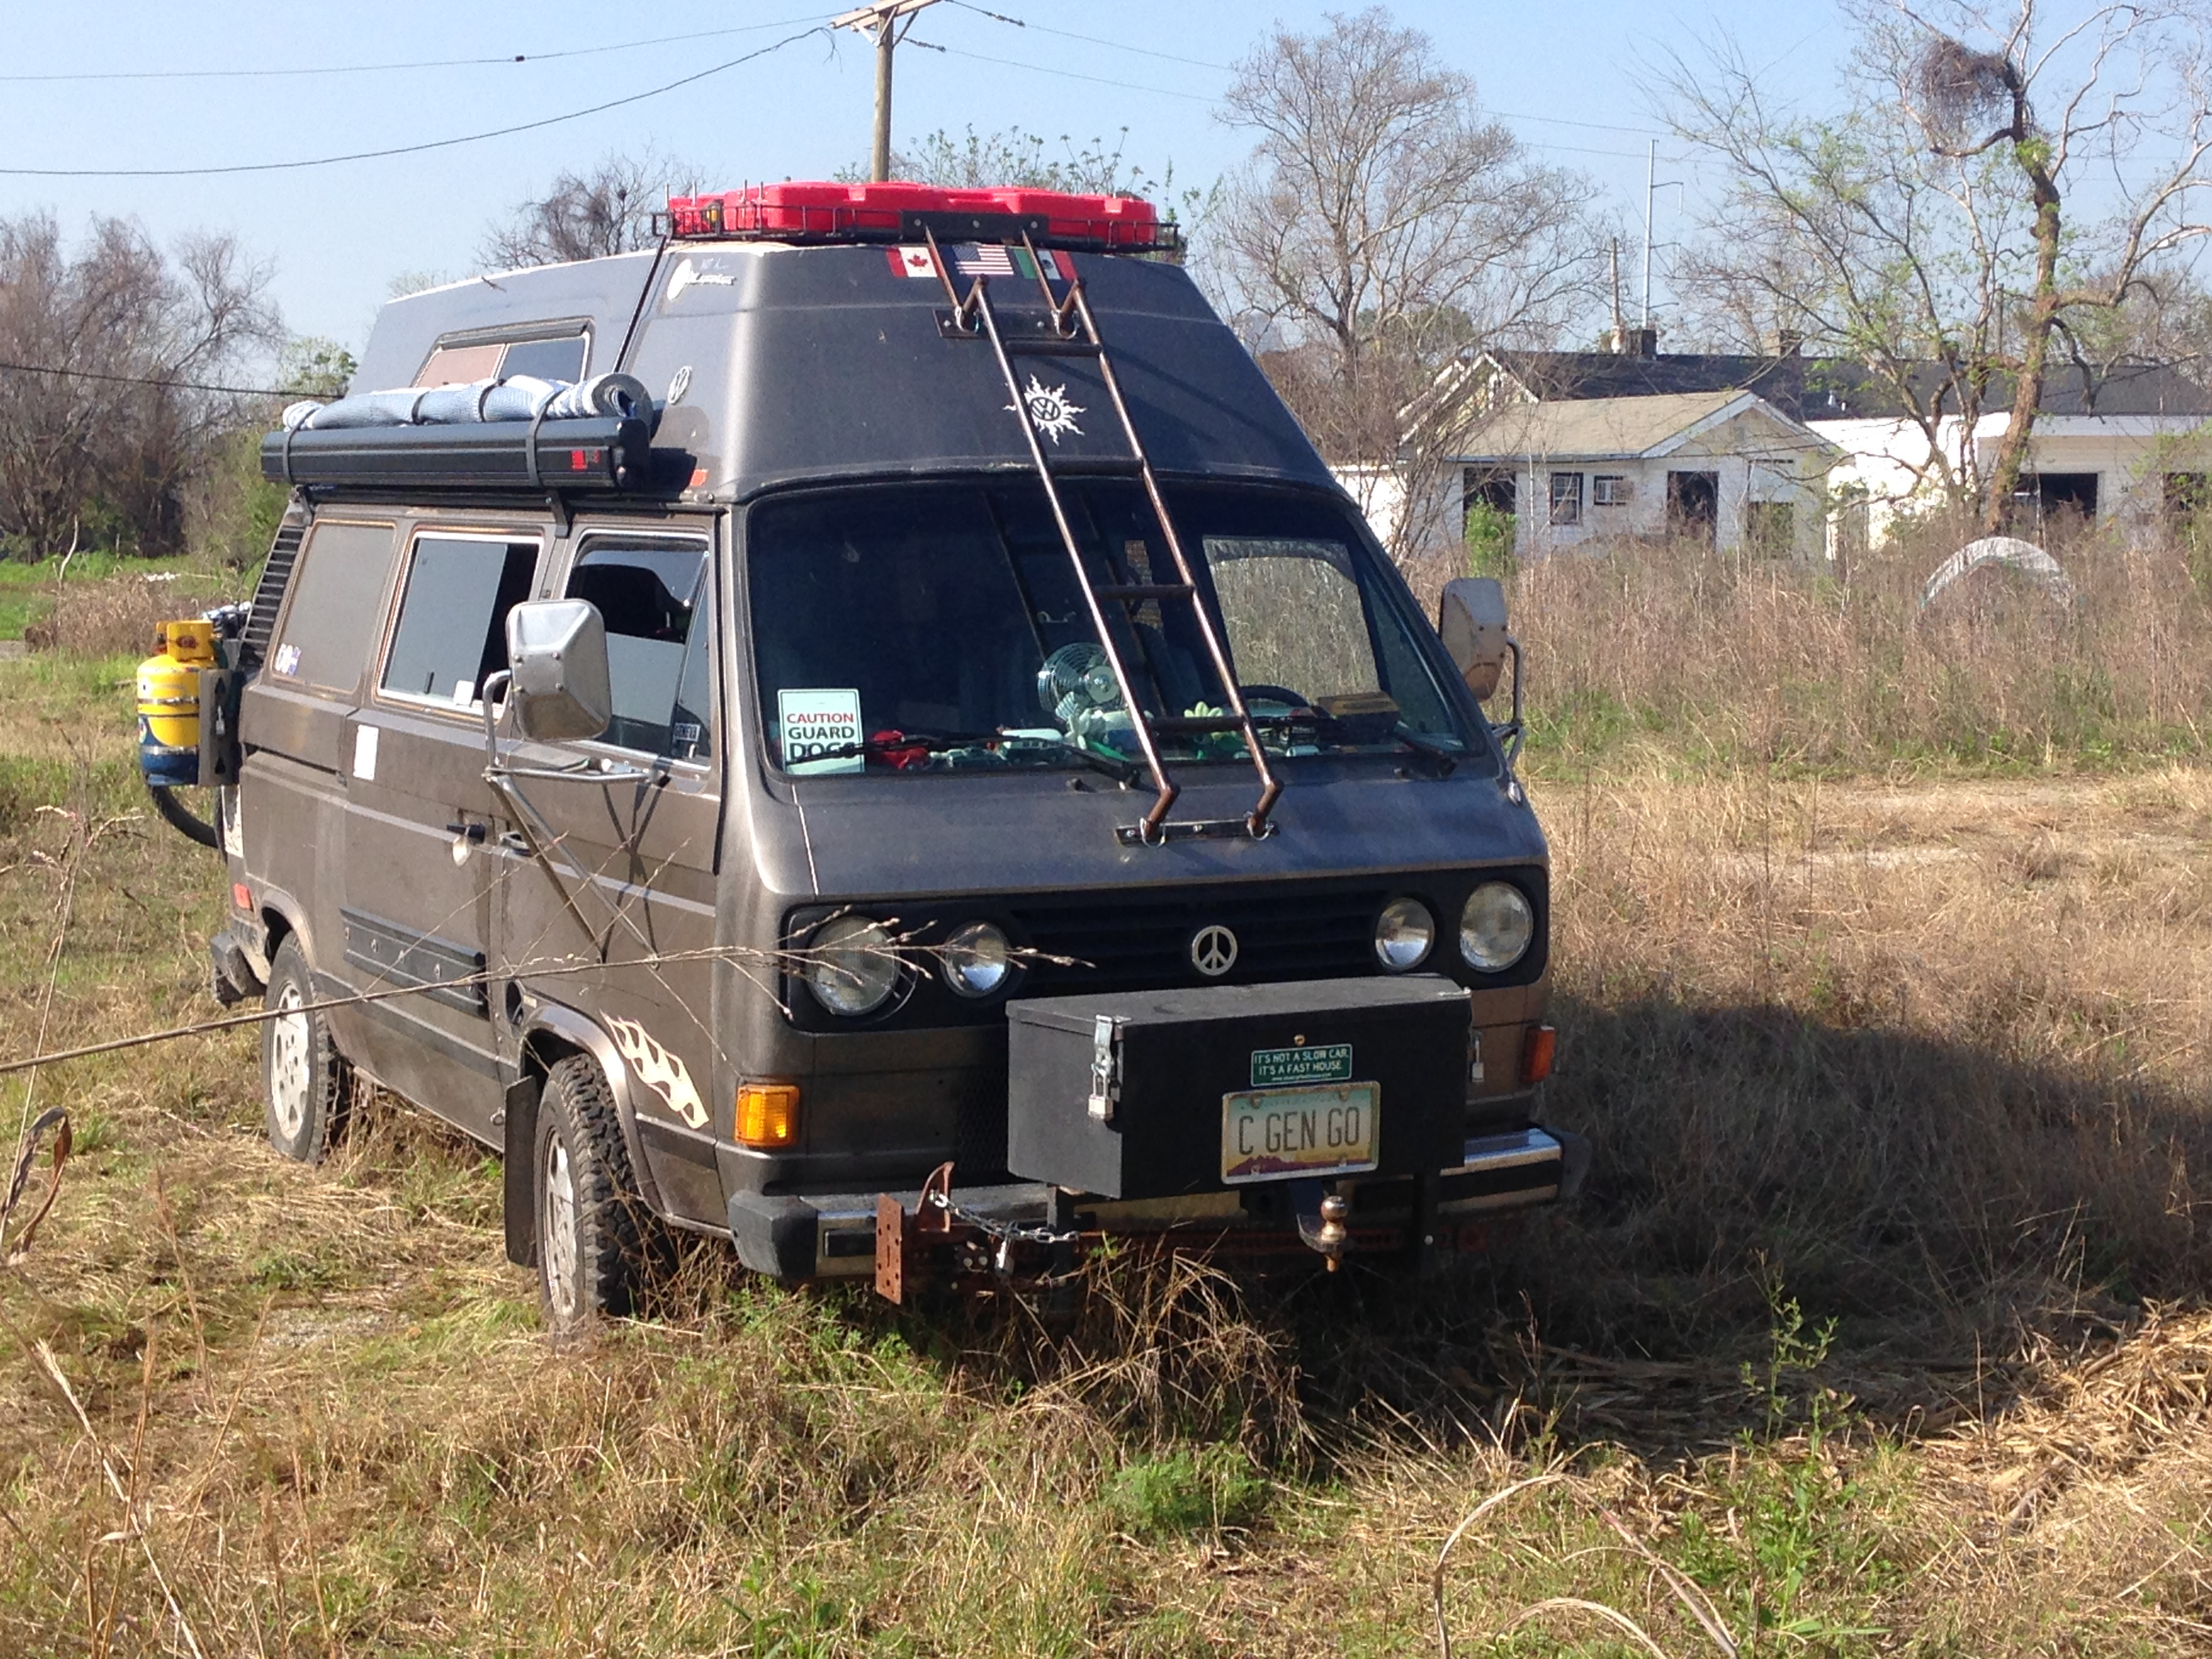 The room and awning features on our hightop vanagon   It's